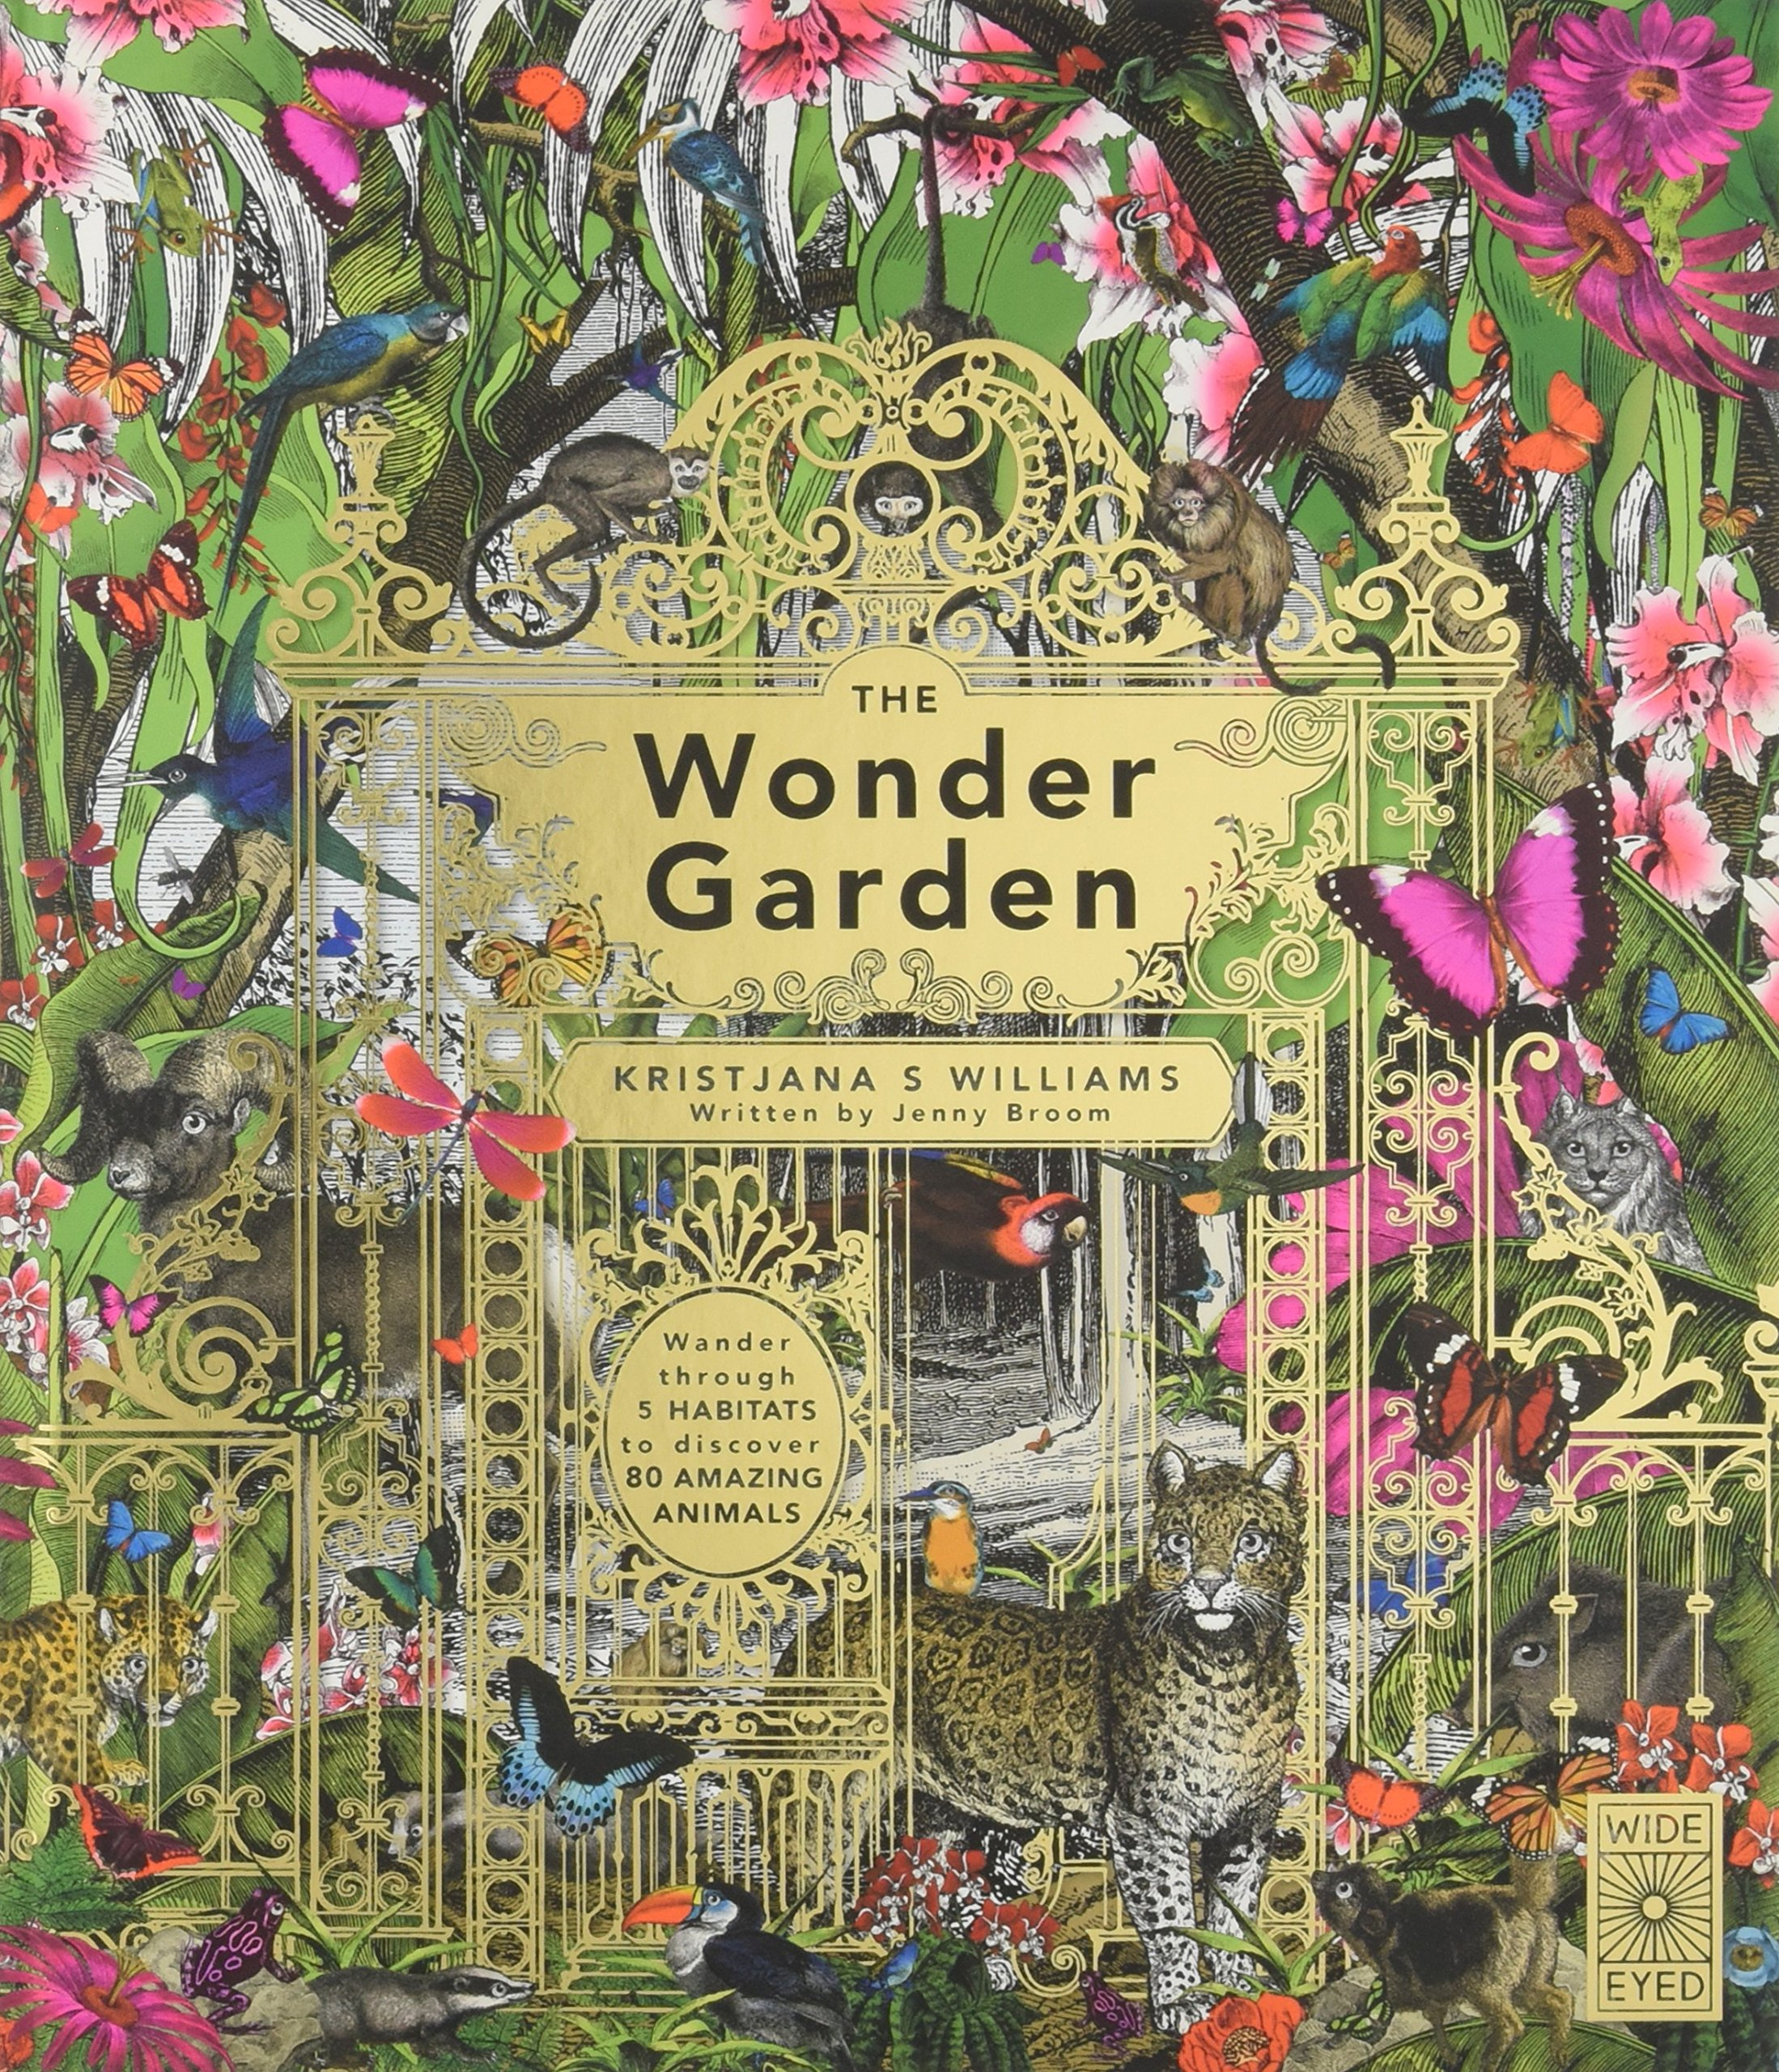 The Wonder Garden: Wander through 5 habitats to discover 80 amazing animals by Wide Eyed Editions (Image #1)